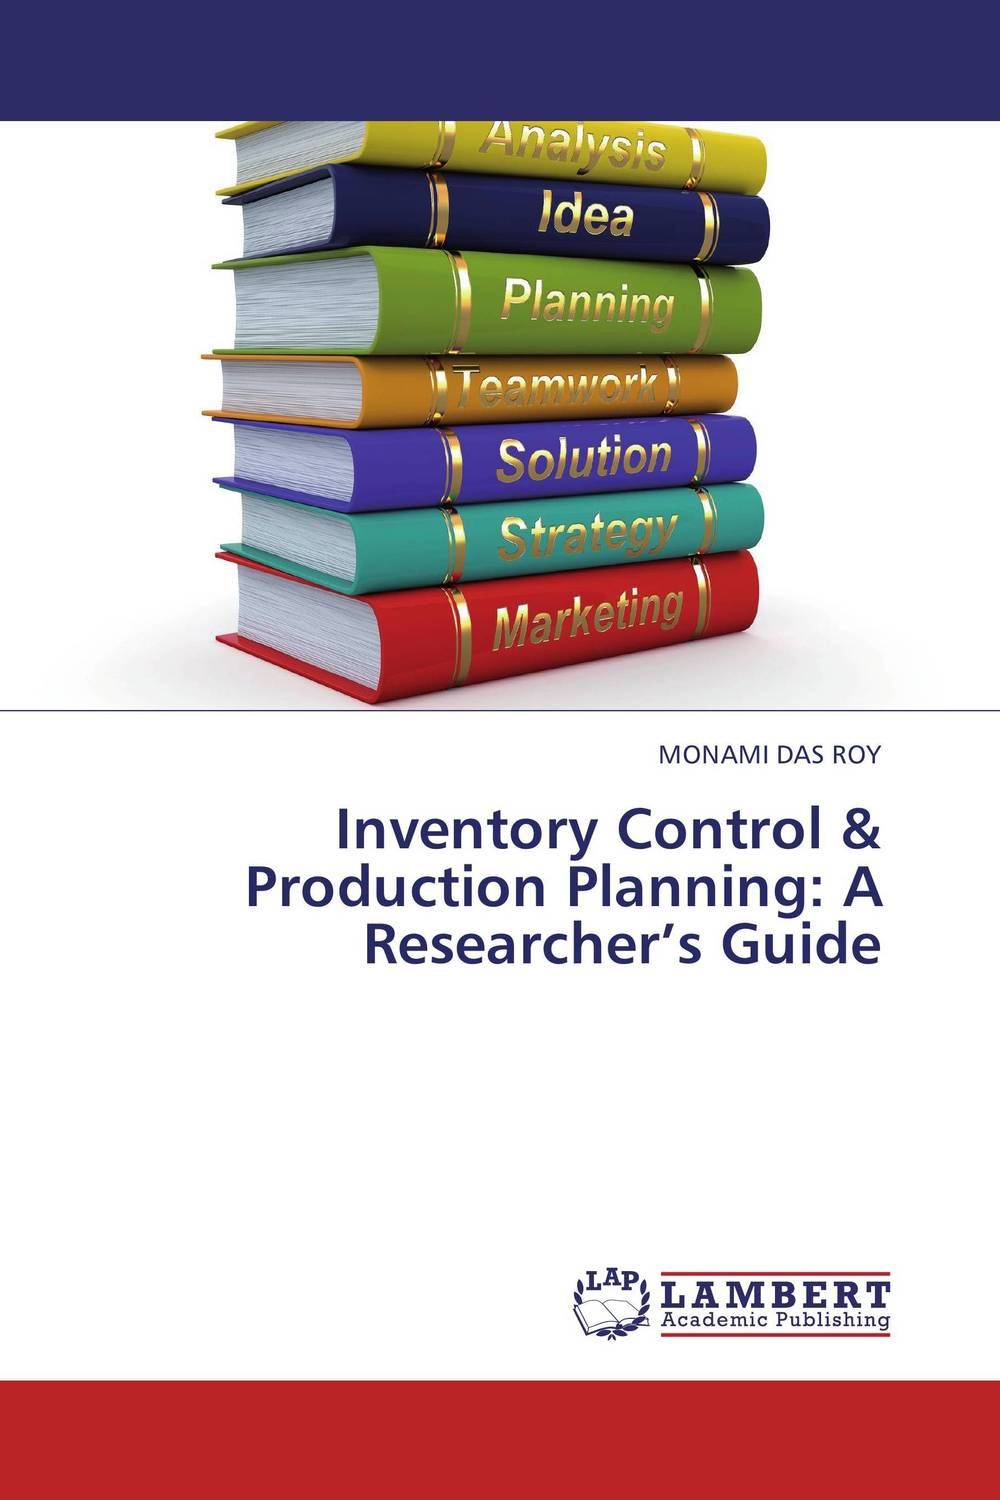 Inventory Control & Production Planning: A Researcher's Guide link for tractor parts or other items not found in the store covers the items as agreed